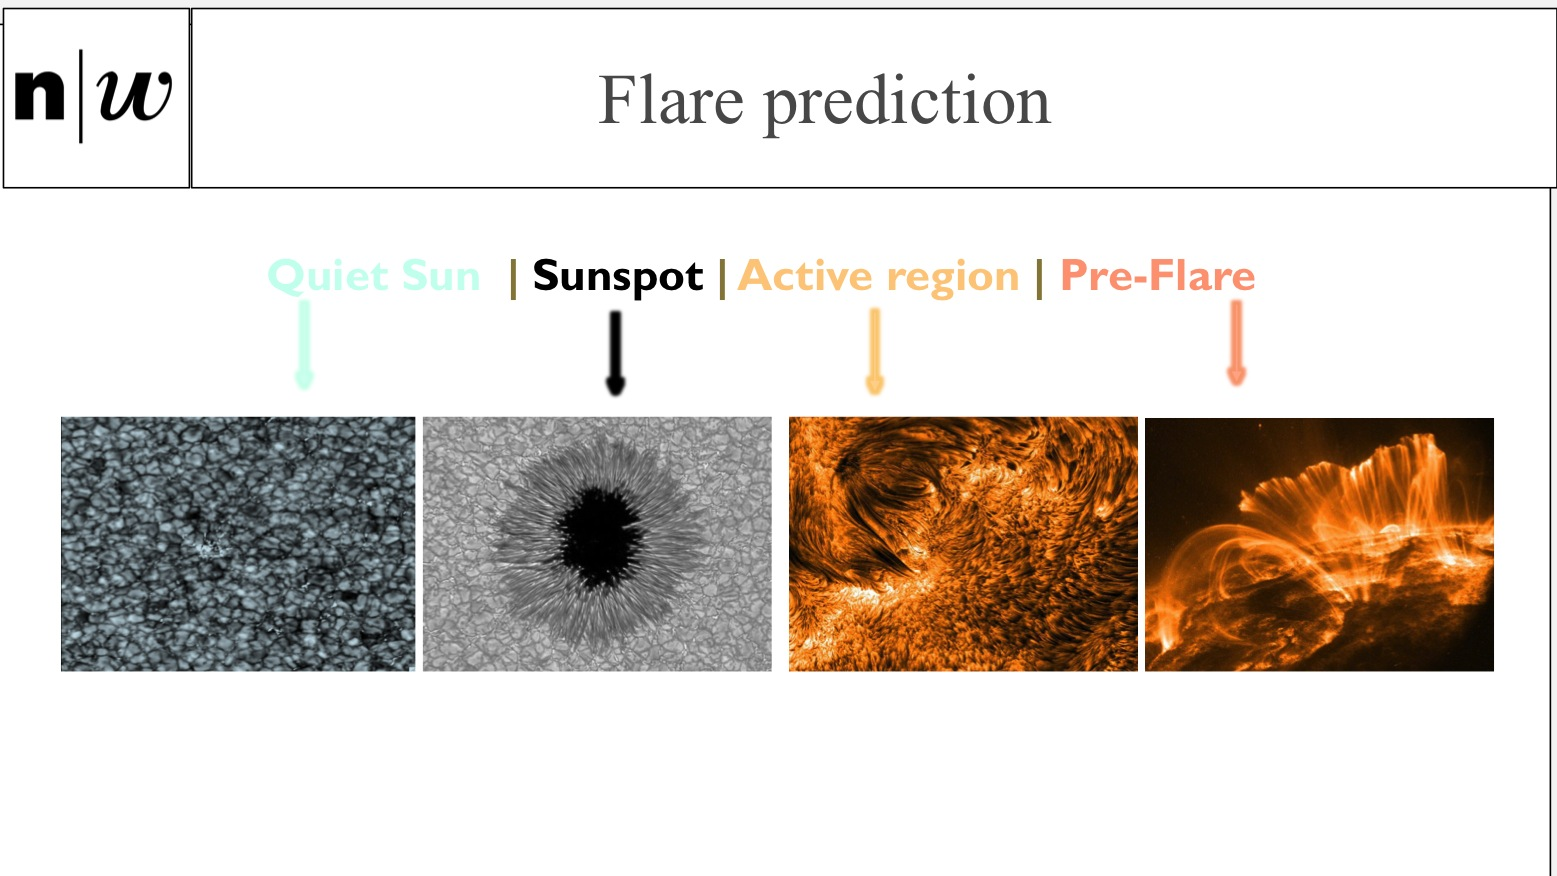 Flare prediction